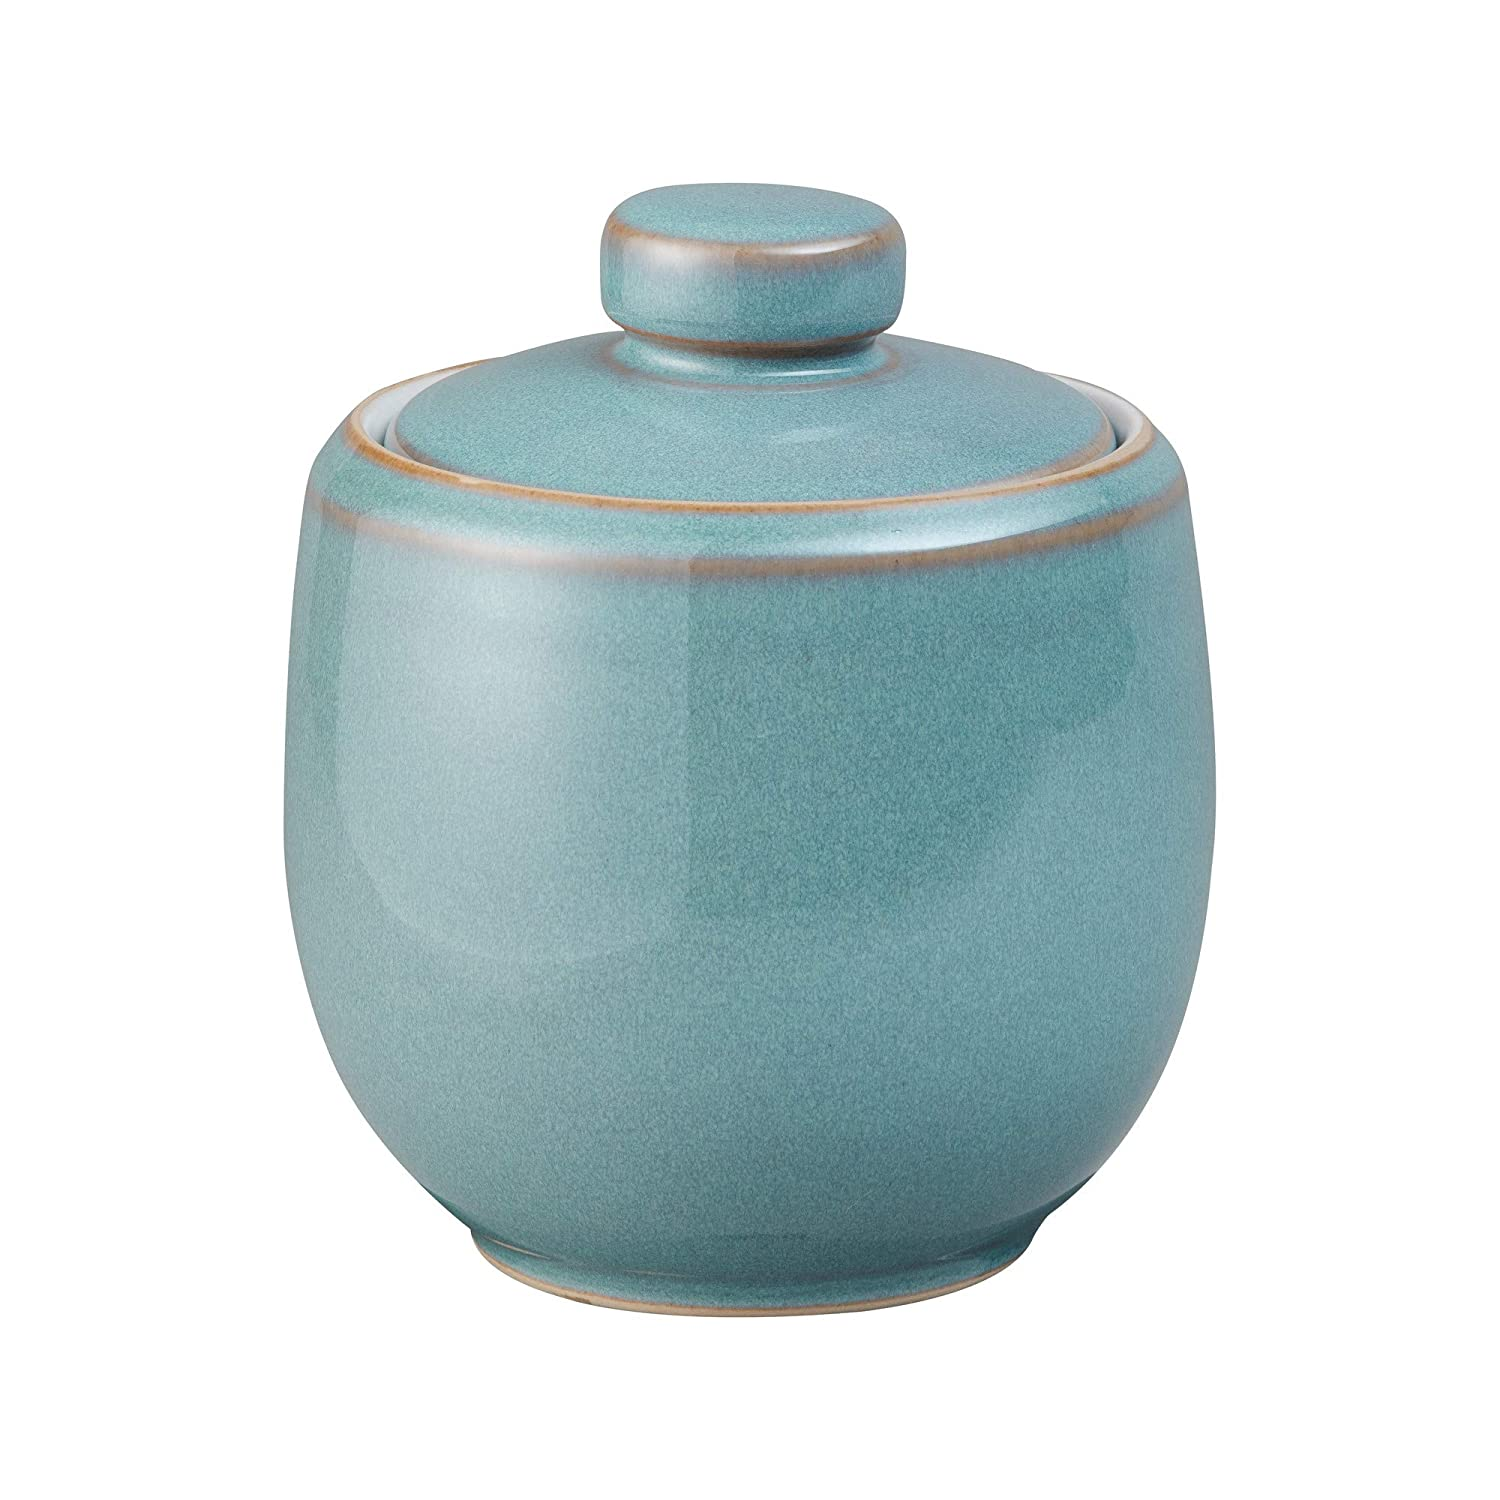 Denby Azure Covered Sugar Bowl 280g AZR-041 Bridal Wedding list gift